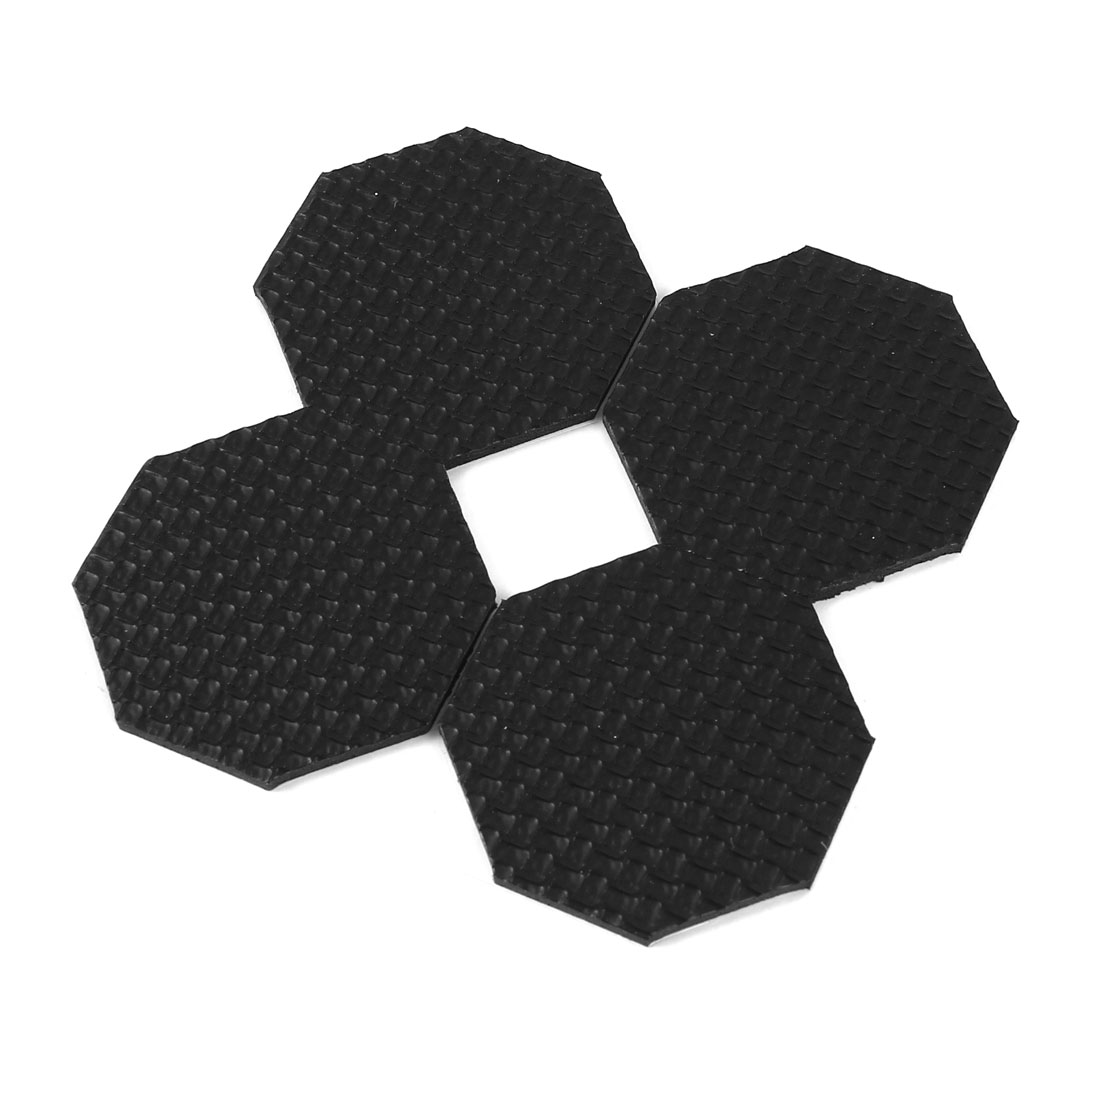 4 Pcs Octagon Anti Skid Furniture Self Adhesive Protection Pads Protector